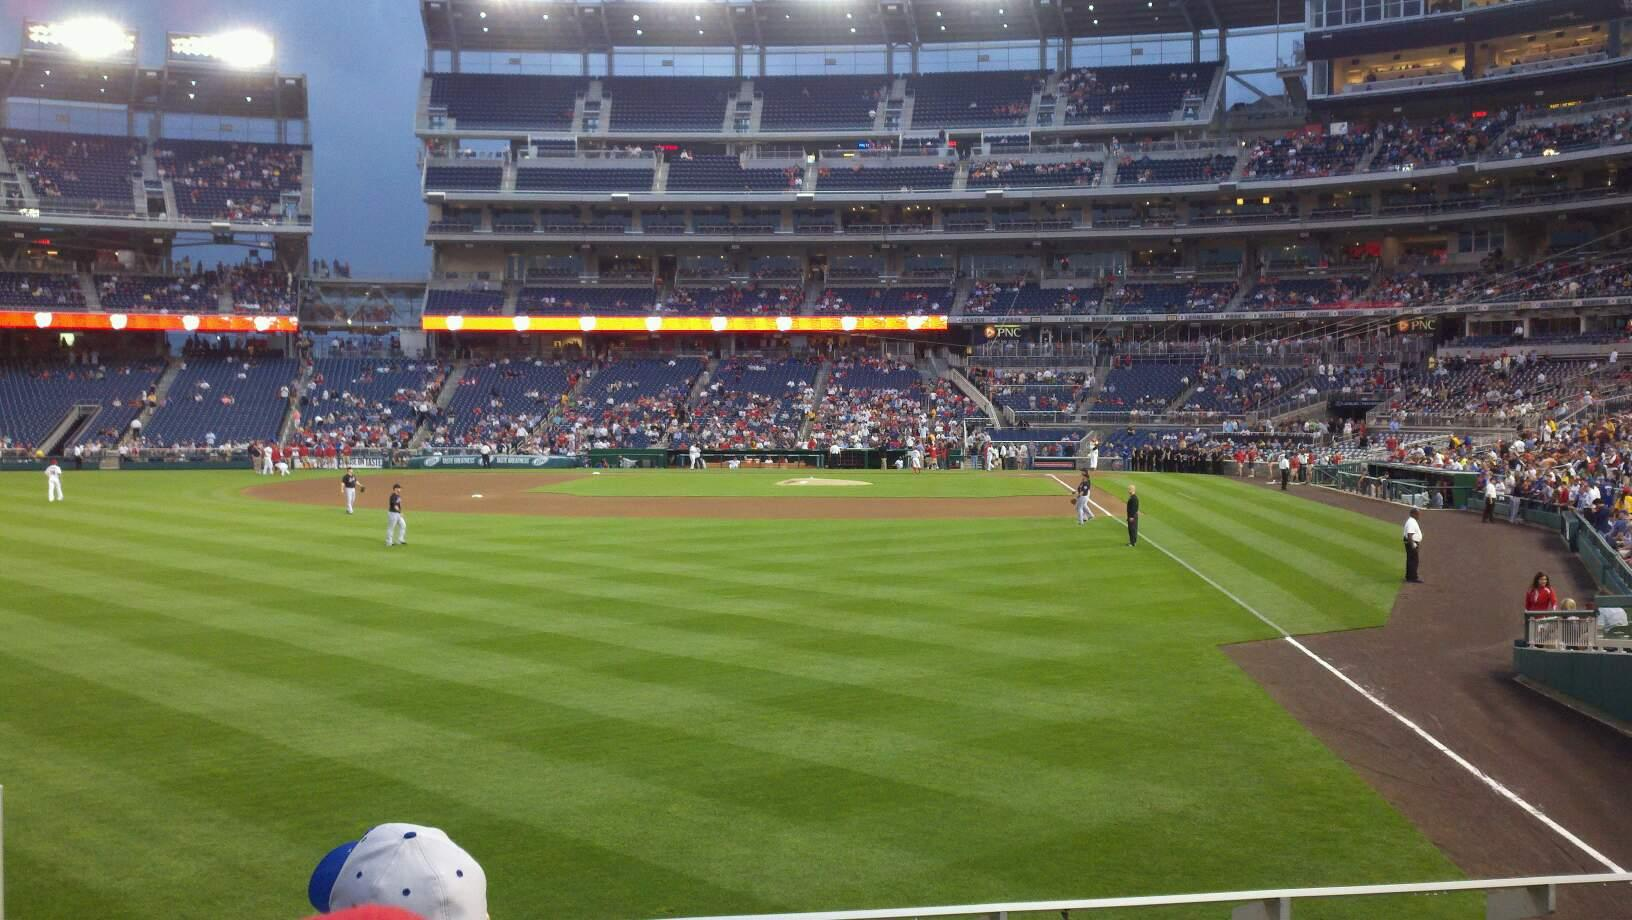 Nationals Park Section 106 Row D Seat 16